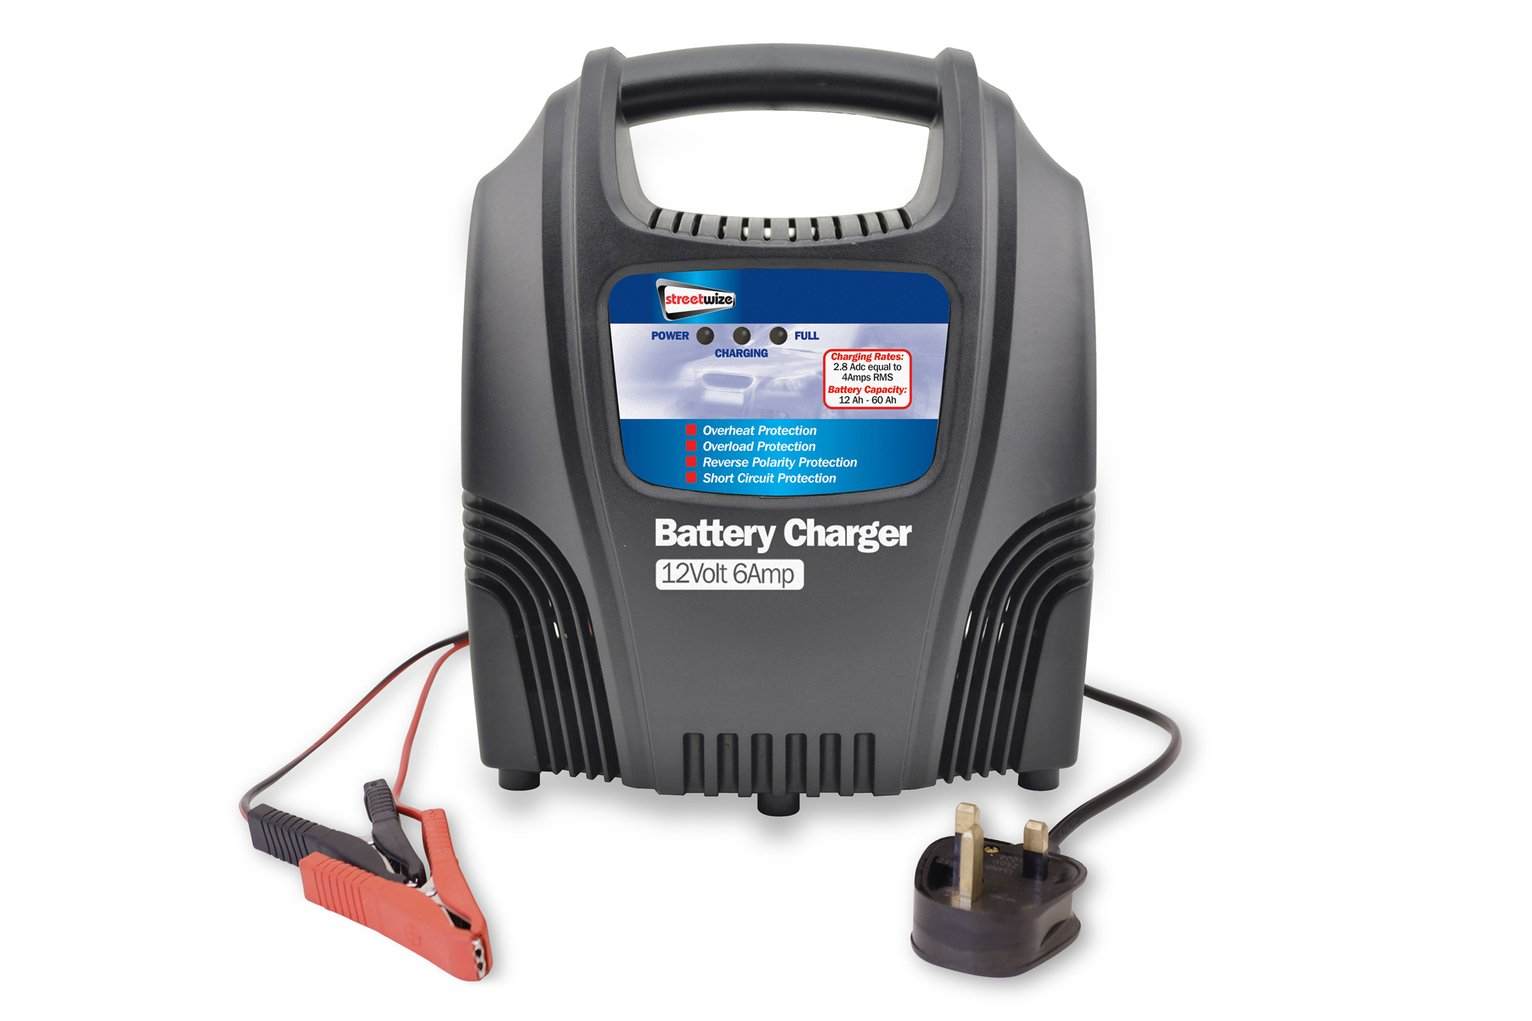 Streetwize 6 Amp 12V Compact Battery Charger. lowest price